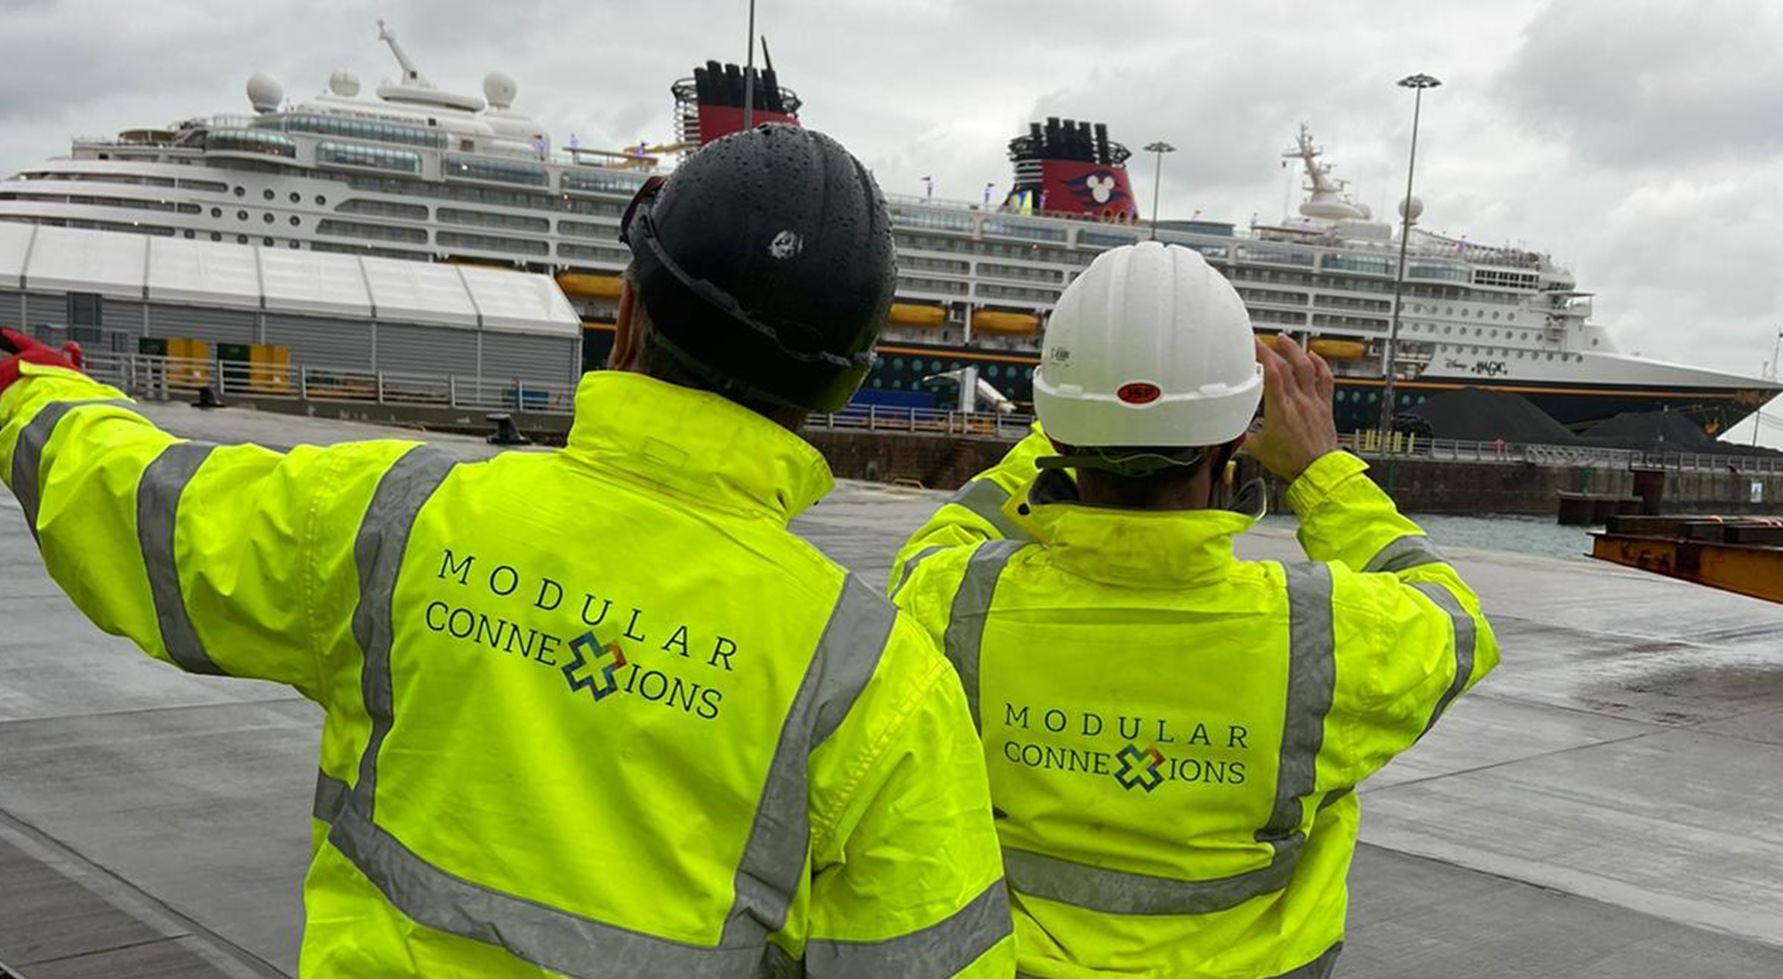 Two Modular Connexions construction workers with yellow hi-vis jackets looking at a ship